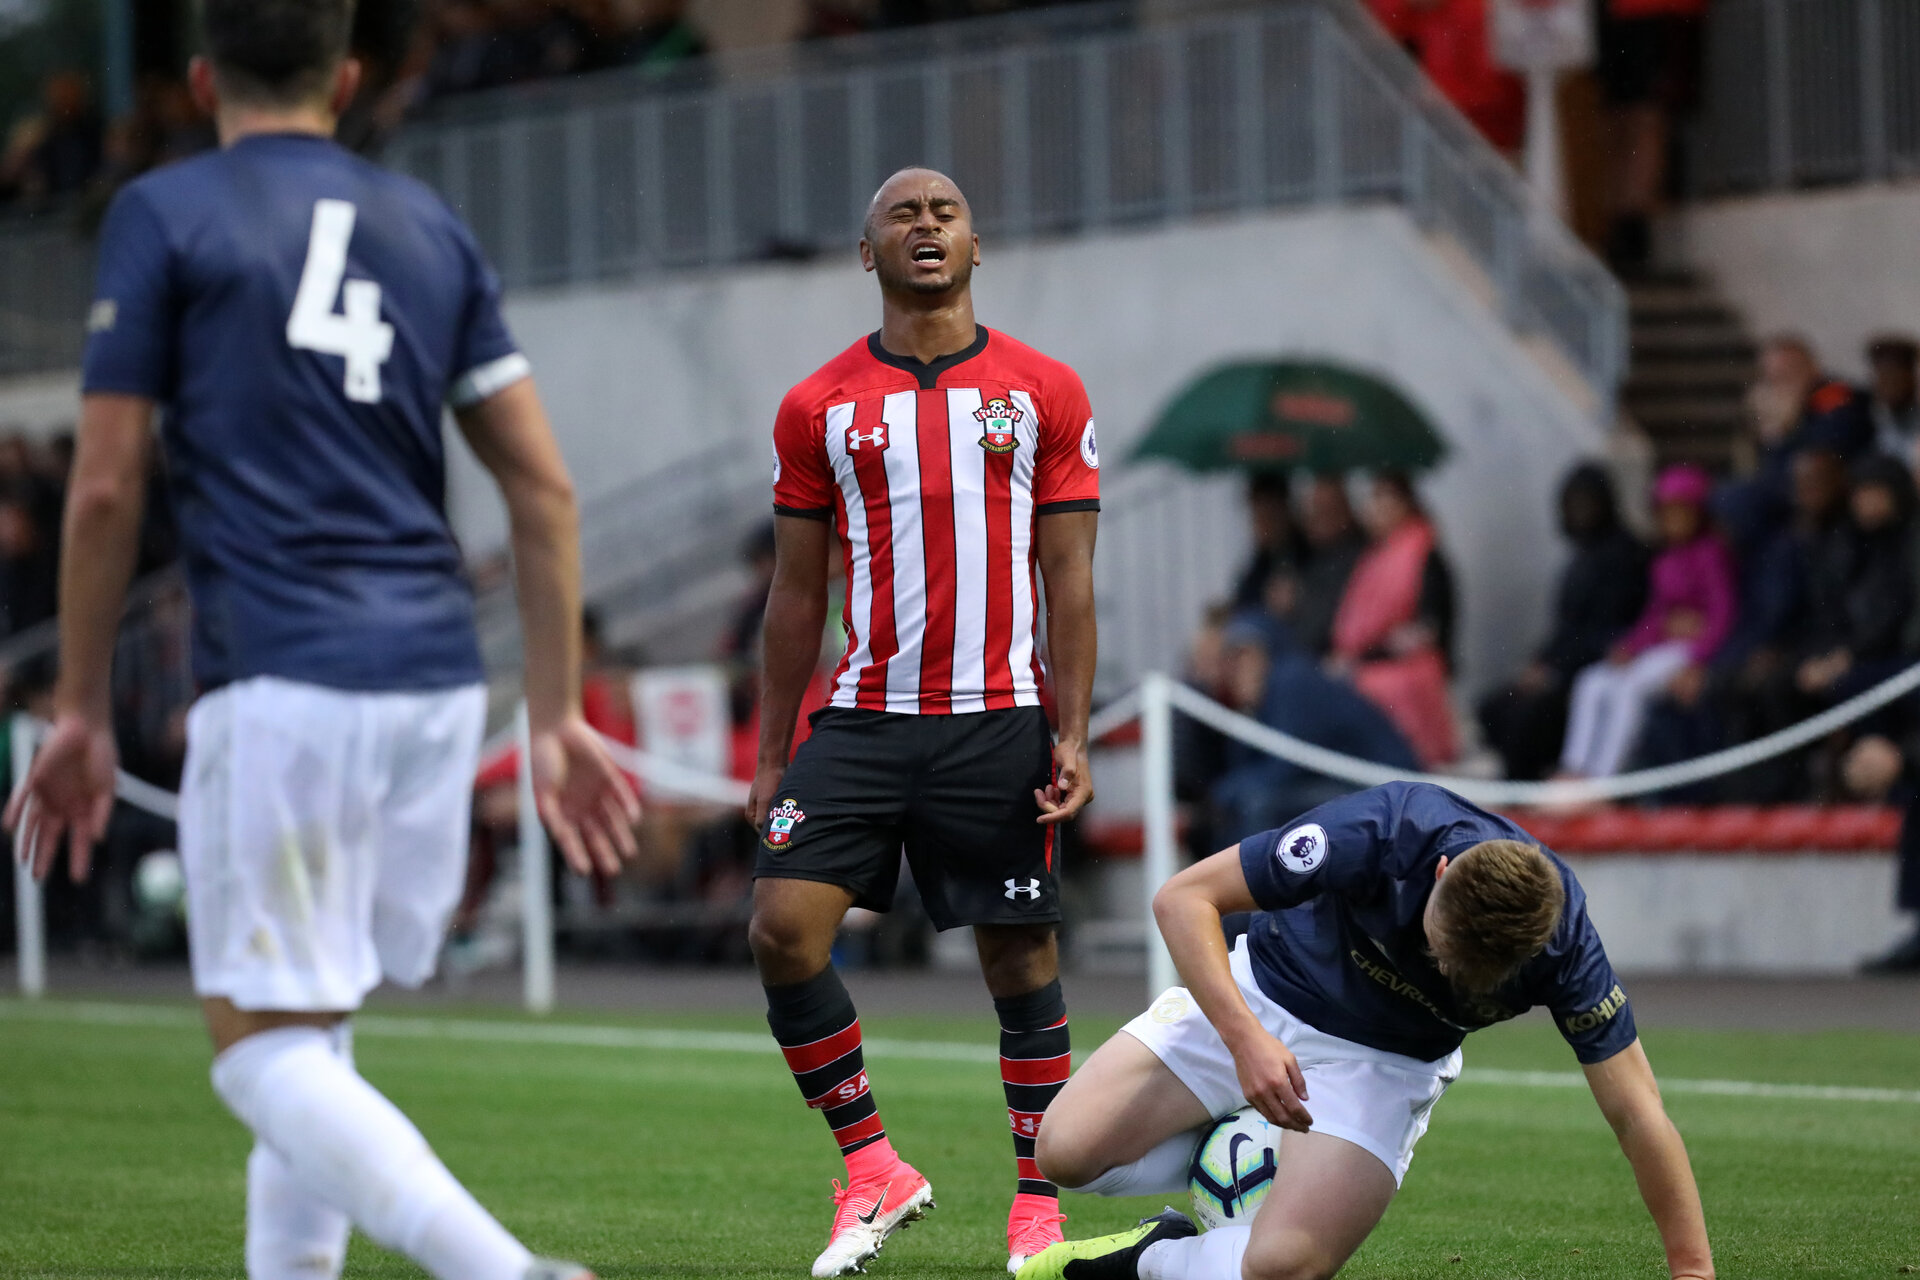 Southampton's Tyreke Johnson. Southampton U23s v Manchester United U23s, Staplewood Campus, Marchwood, Southampton            Picture: Chris Moorhouse               Friday 24th August 2018             FOR EDITORIAL USE ONLY